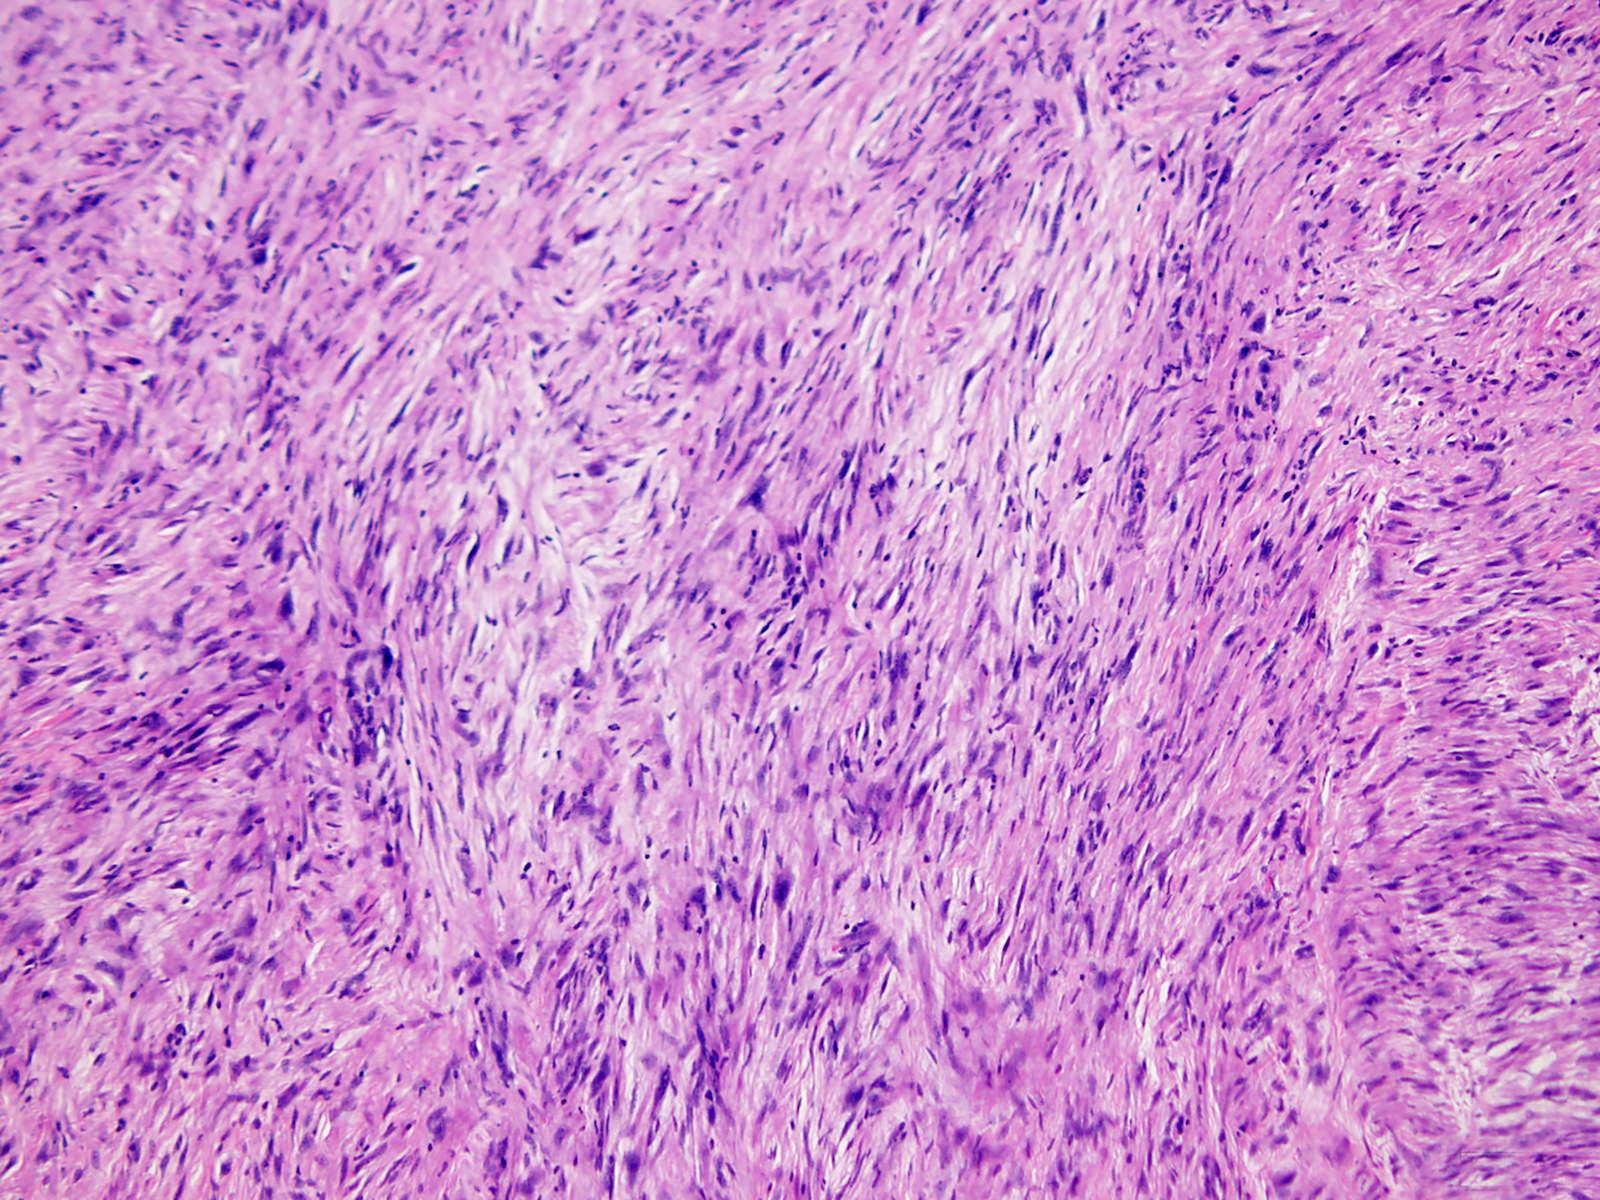 Superficial CD34+ fibroblastic tumor